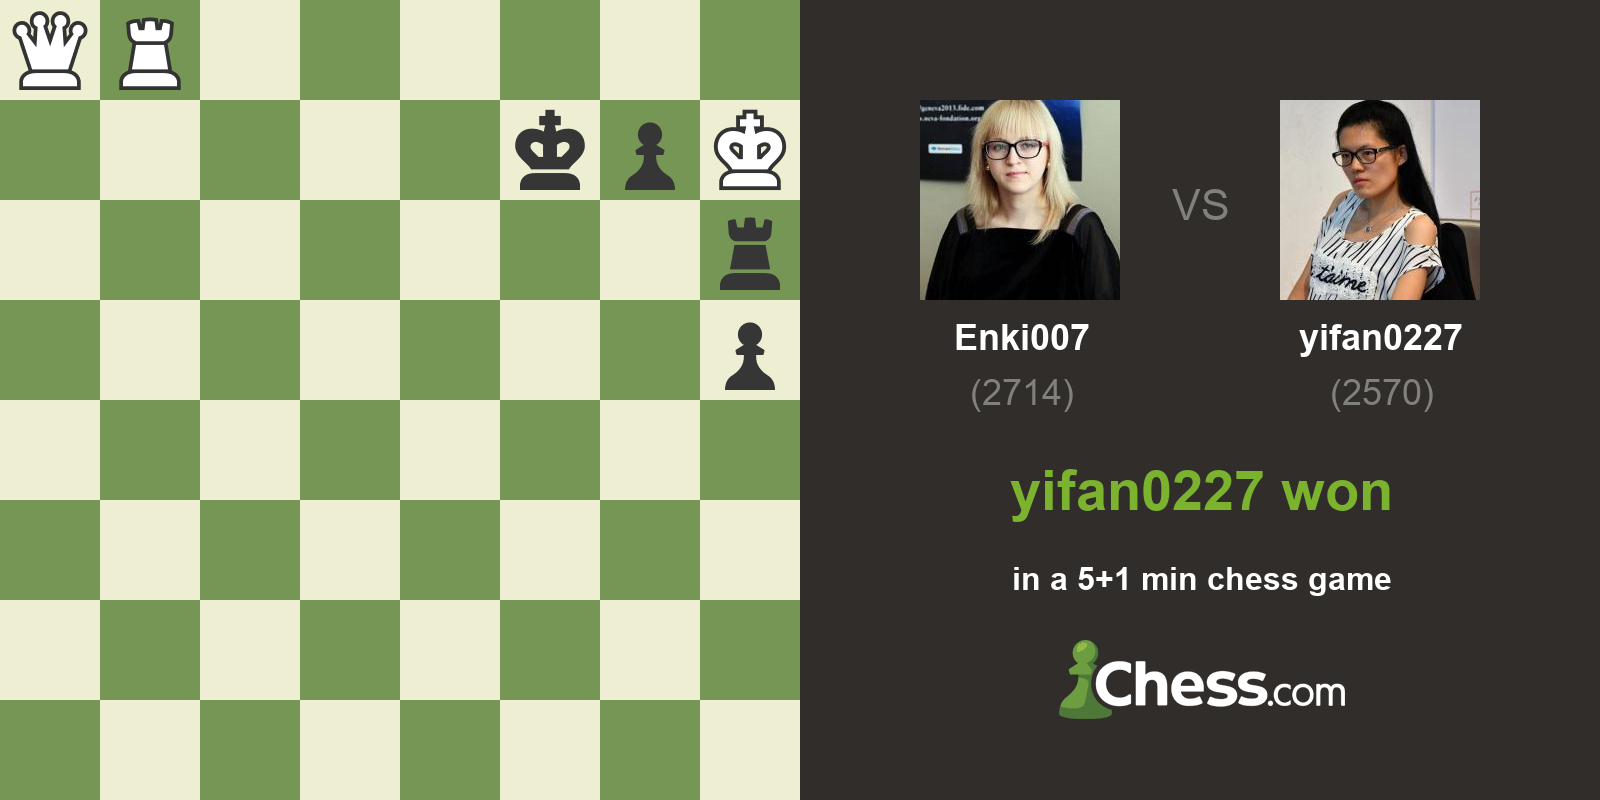 Chess: GM Enki007 vs GM yifan0227